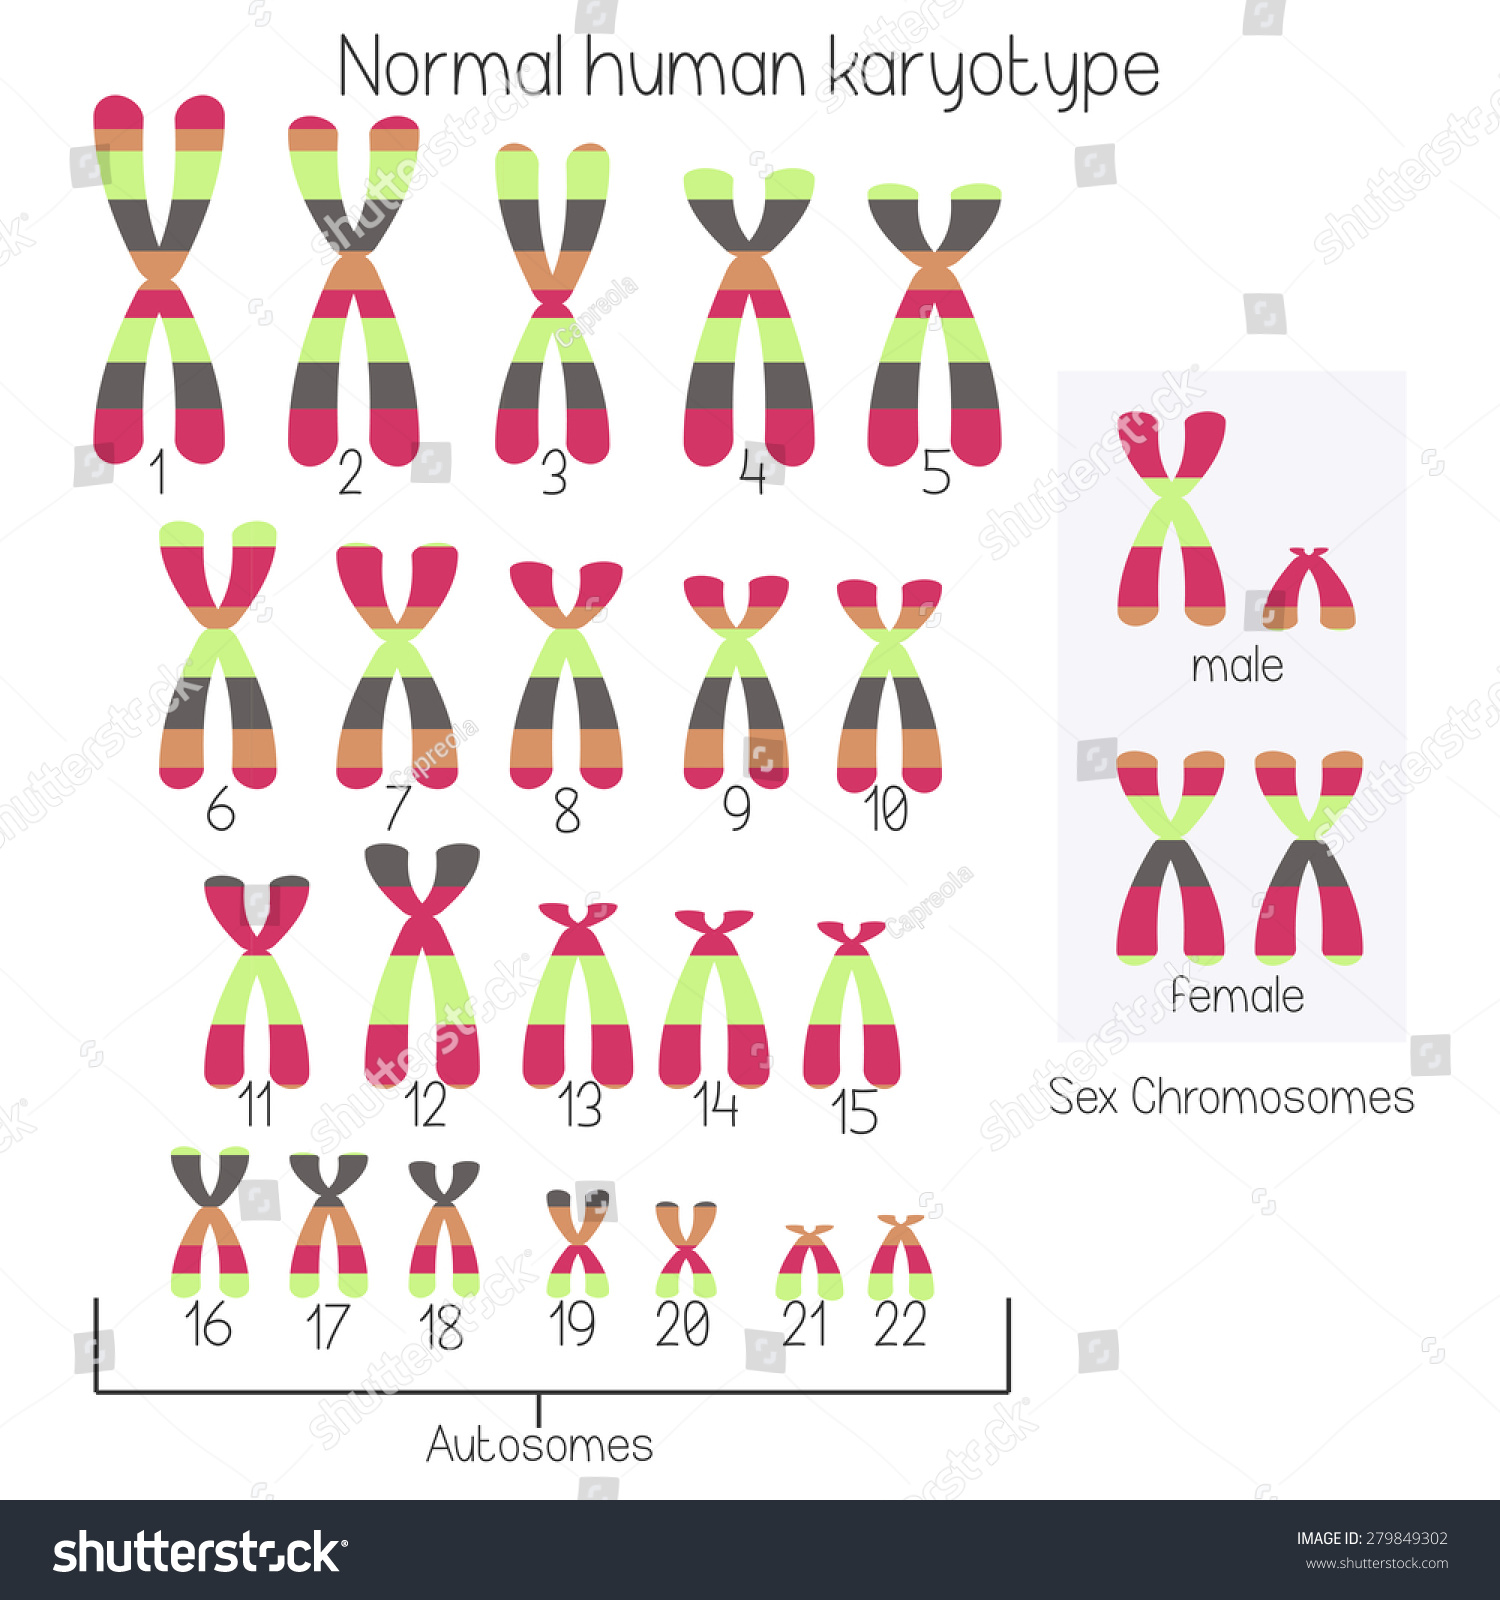 Normal Human Karyotype Chromosome Idiogram Stock Vector